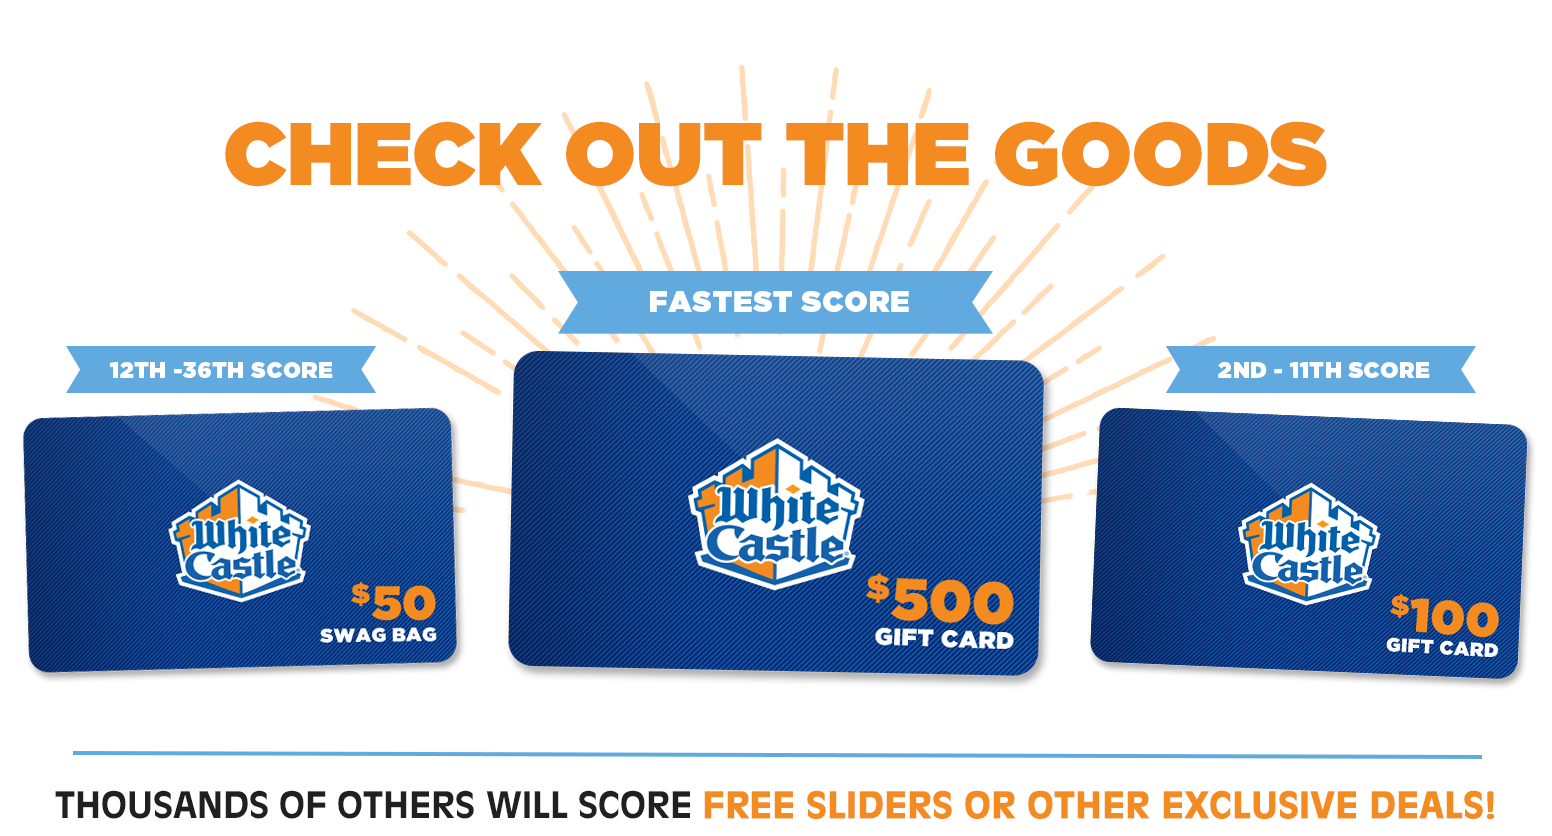 Fastest person scores $500 Gift Card, next 10 score a $100 Gift Card, next 25 score a $50 swag bag and gift cards.